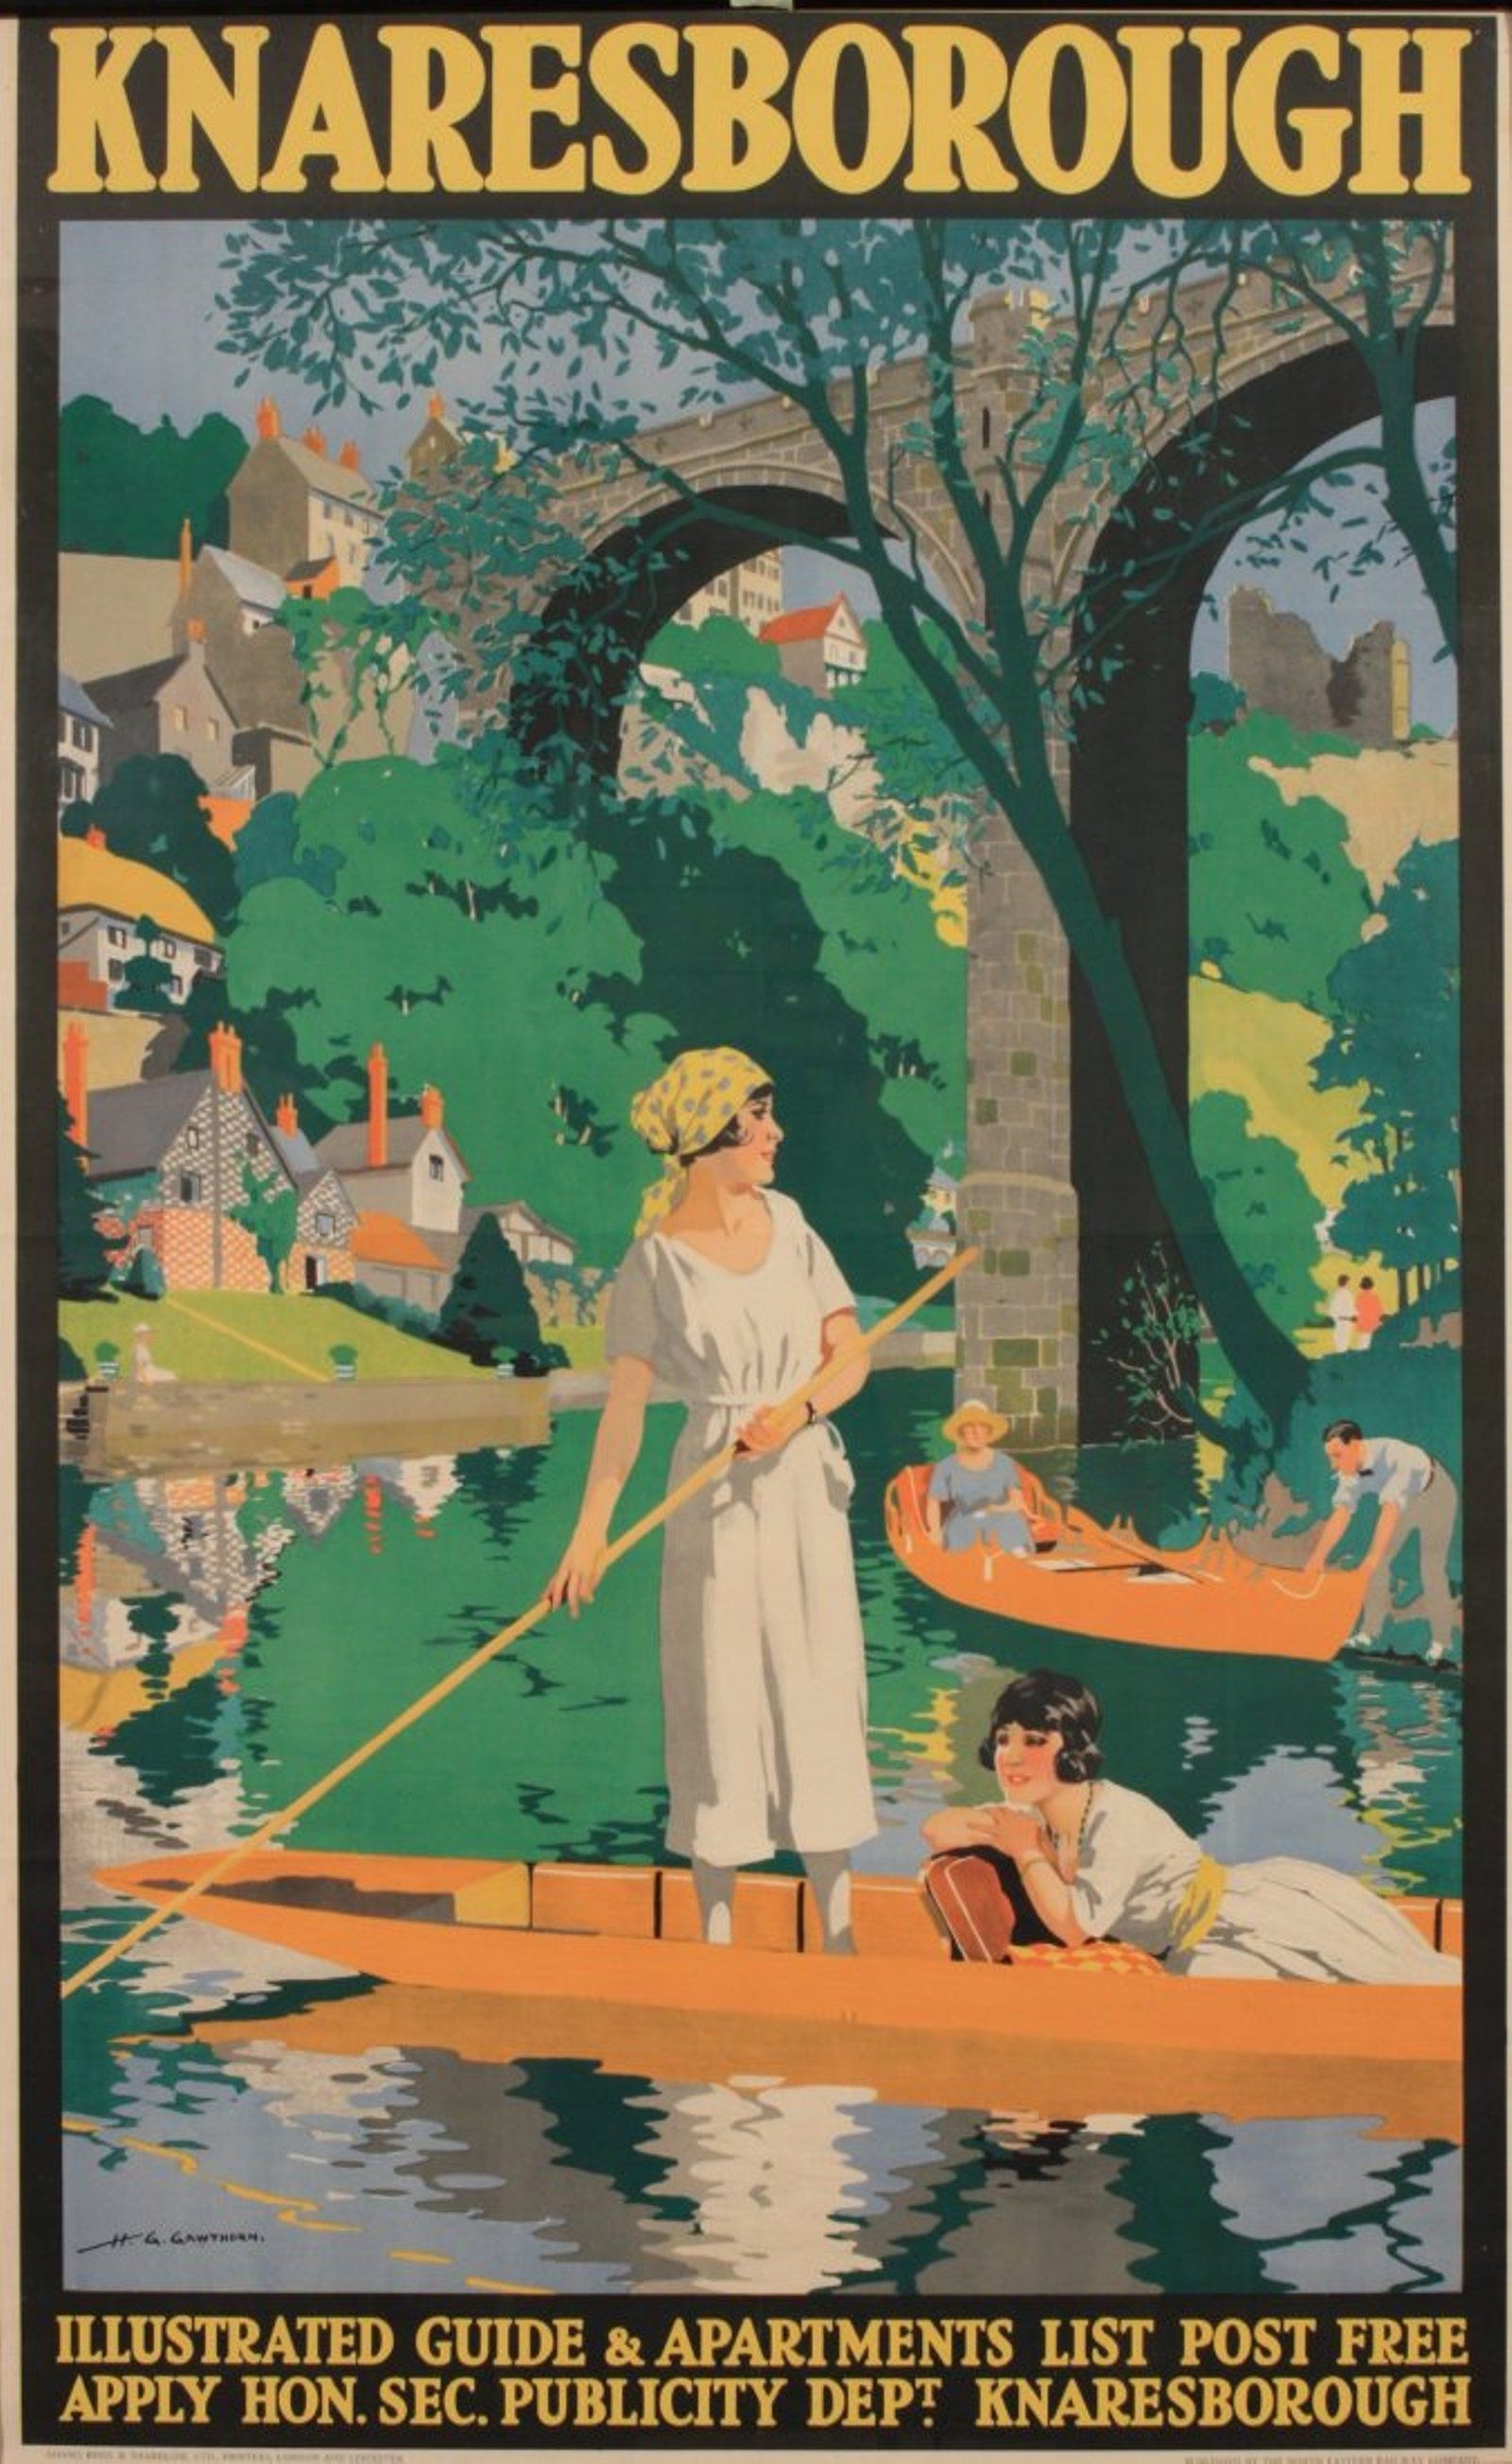 KNARESBOROUGH POSTER YORKSHIRE VINTAGE RETRO RAILWAY TRAVEL ADVERTISING ART